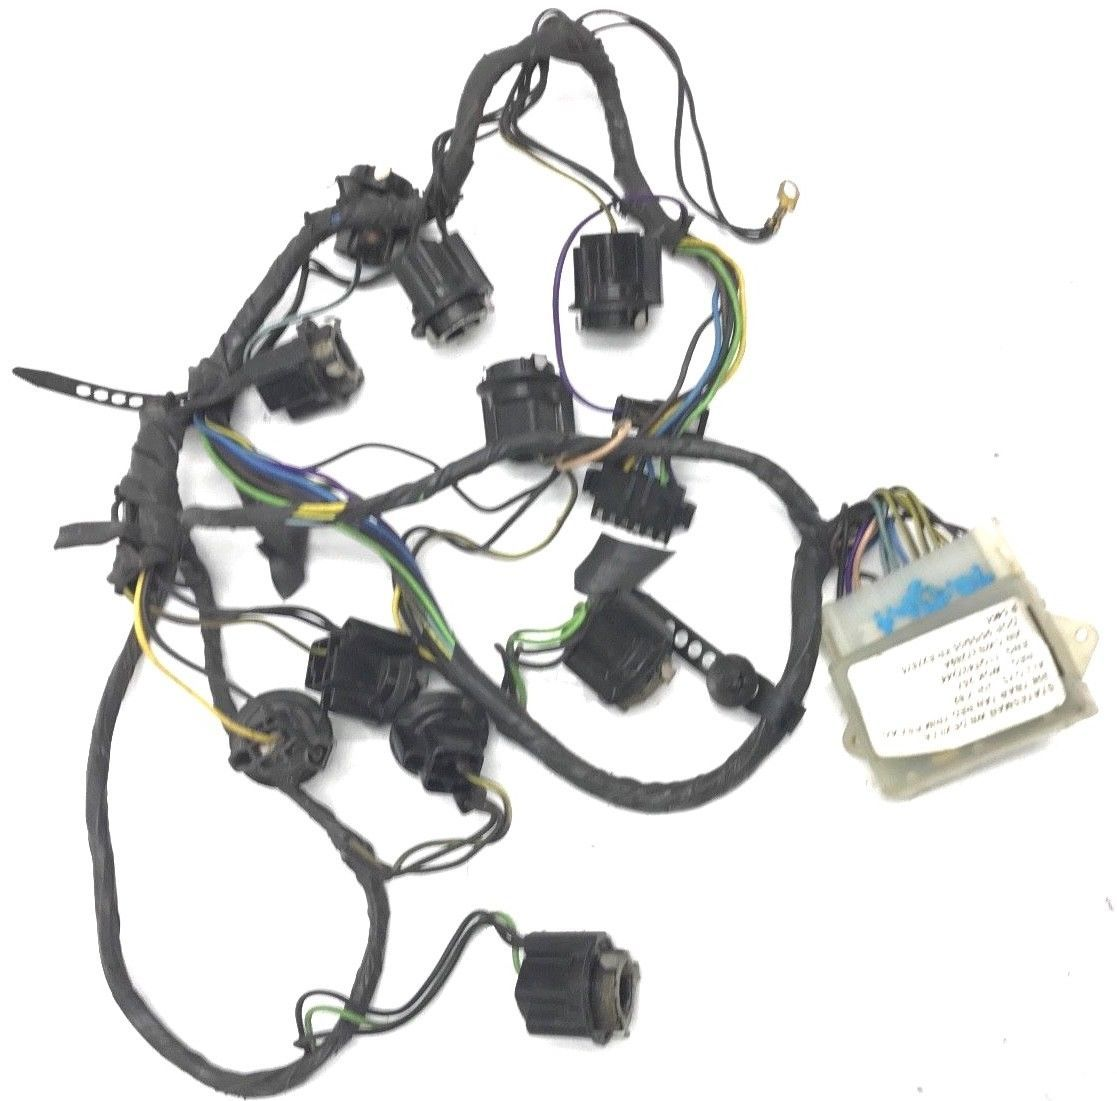 hight resolution of wb statesman holden taillight wiring harness with lamp fail unit caprice deville